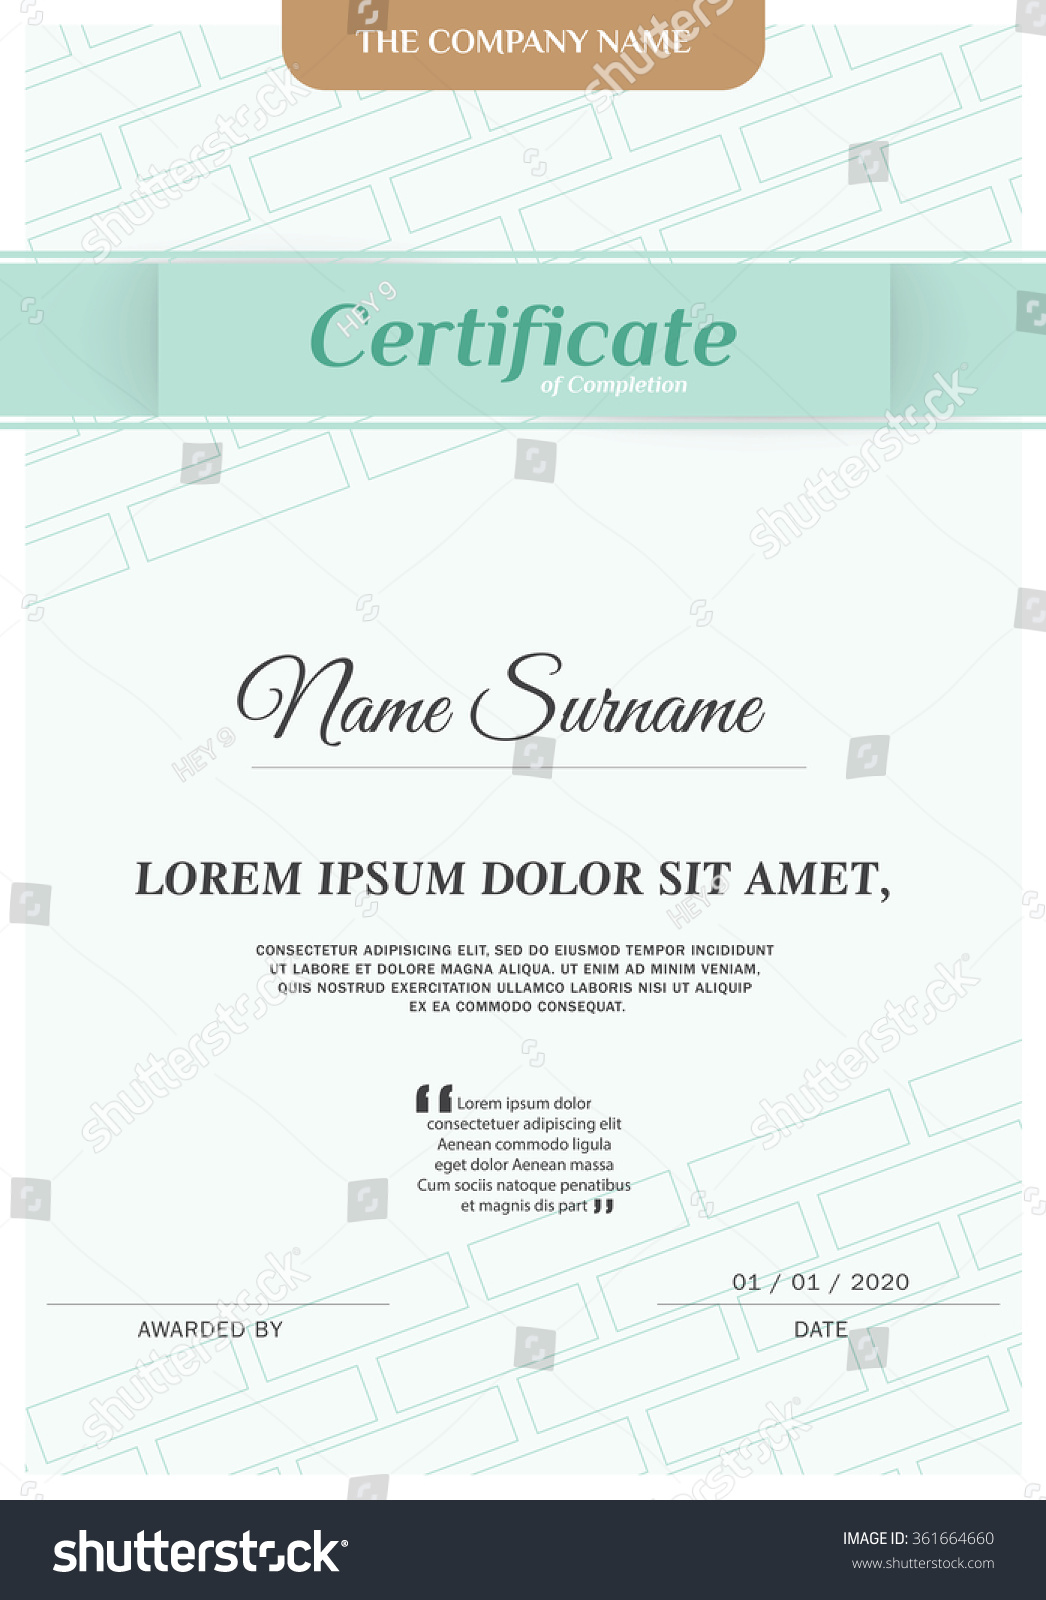 Free certificate template modern image collections certificate certificate vector template images templates example free download xflitez Choice Image